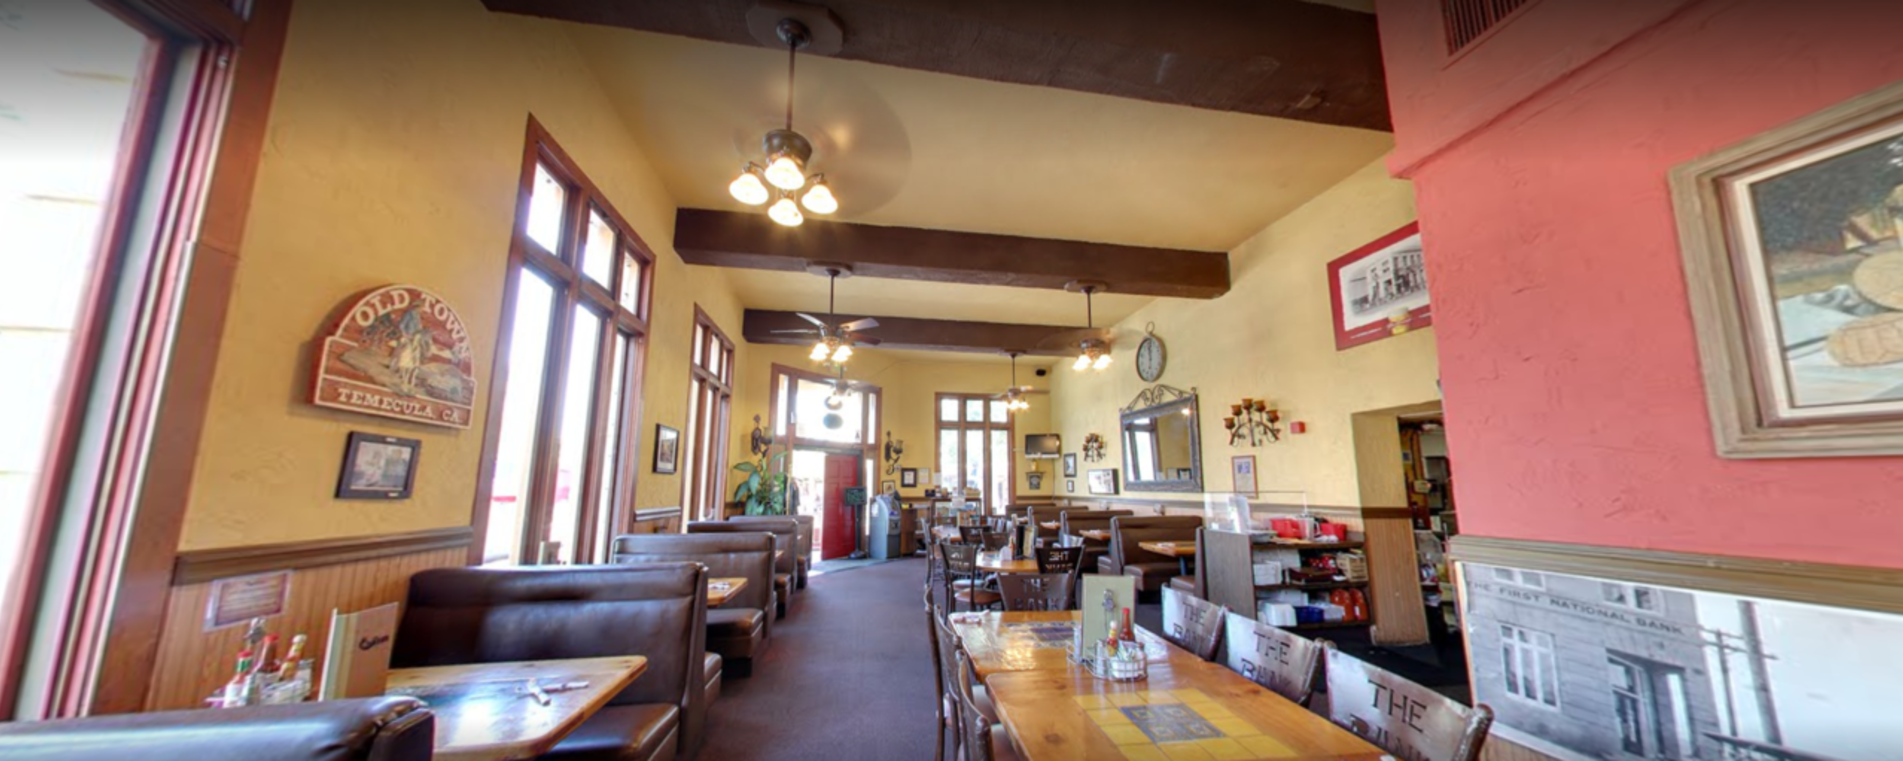 The Bank Mexican Restaurant - Temecula